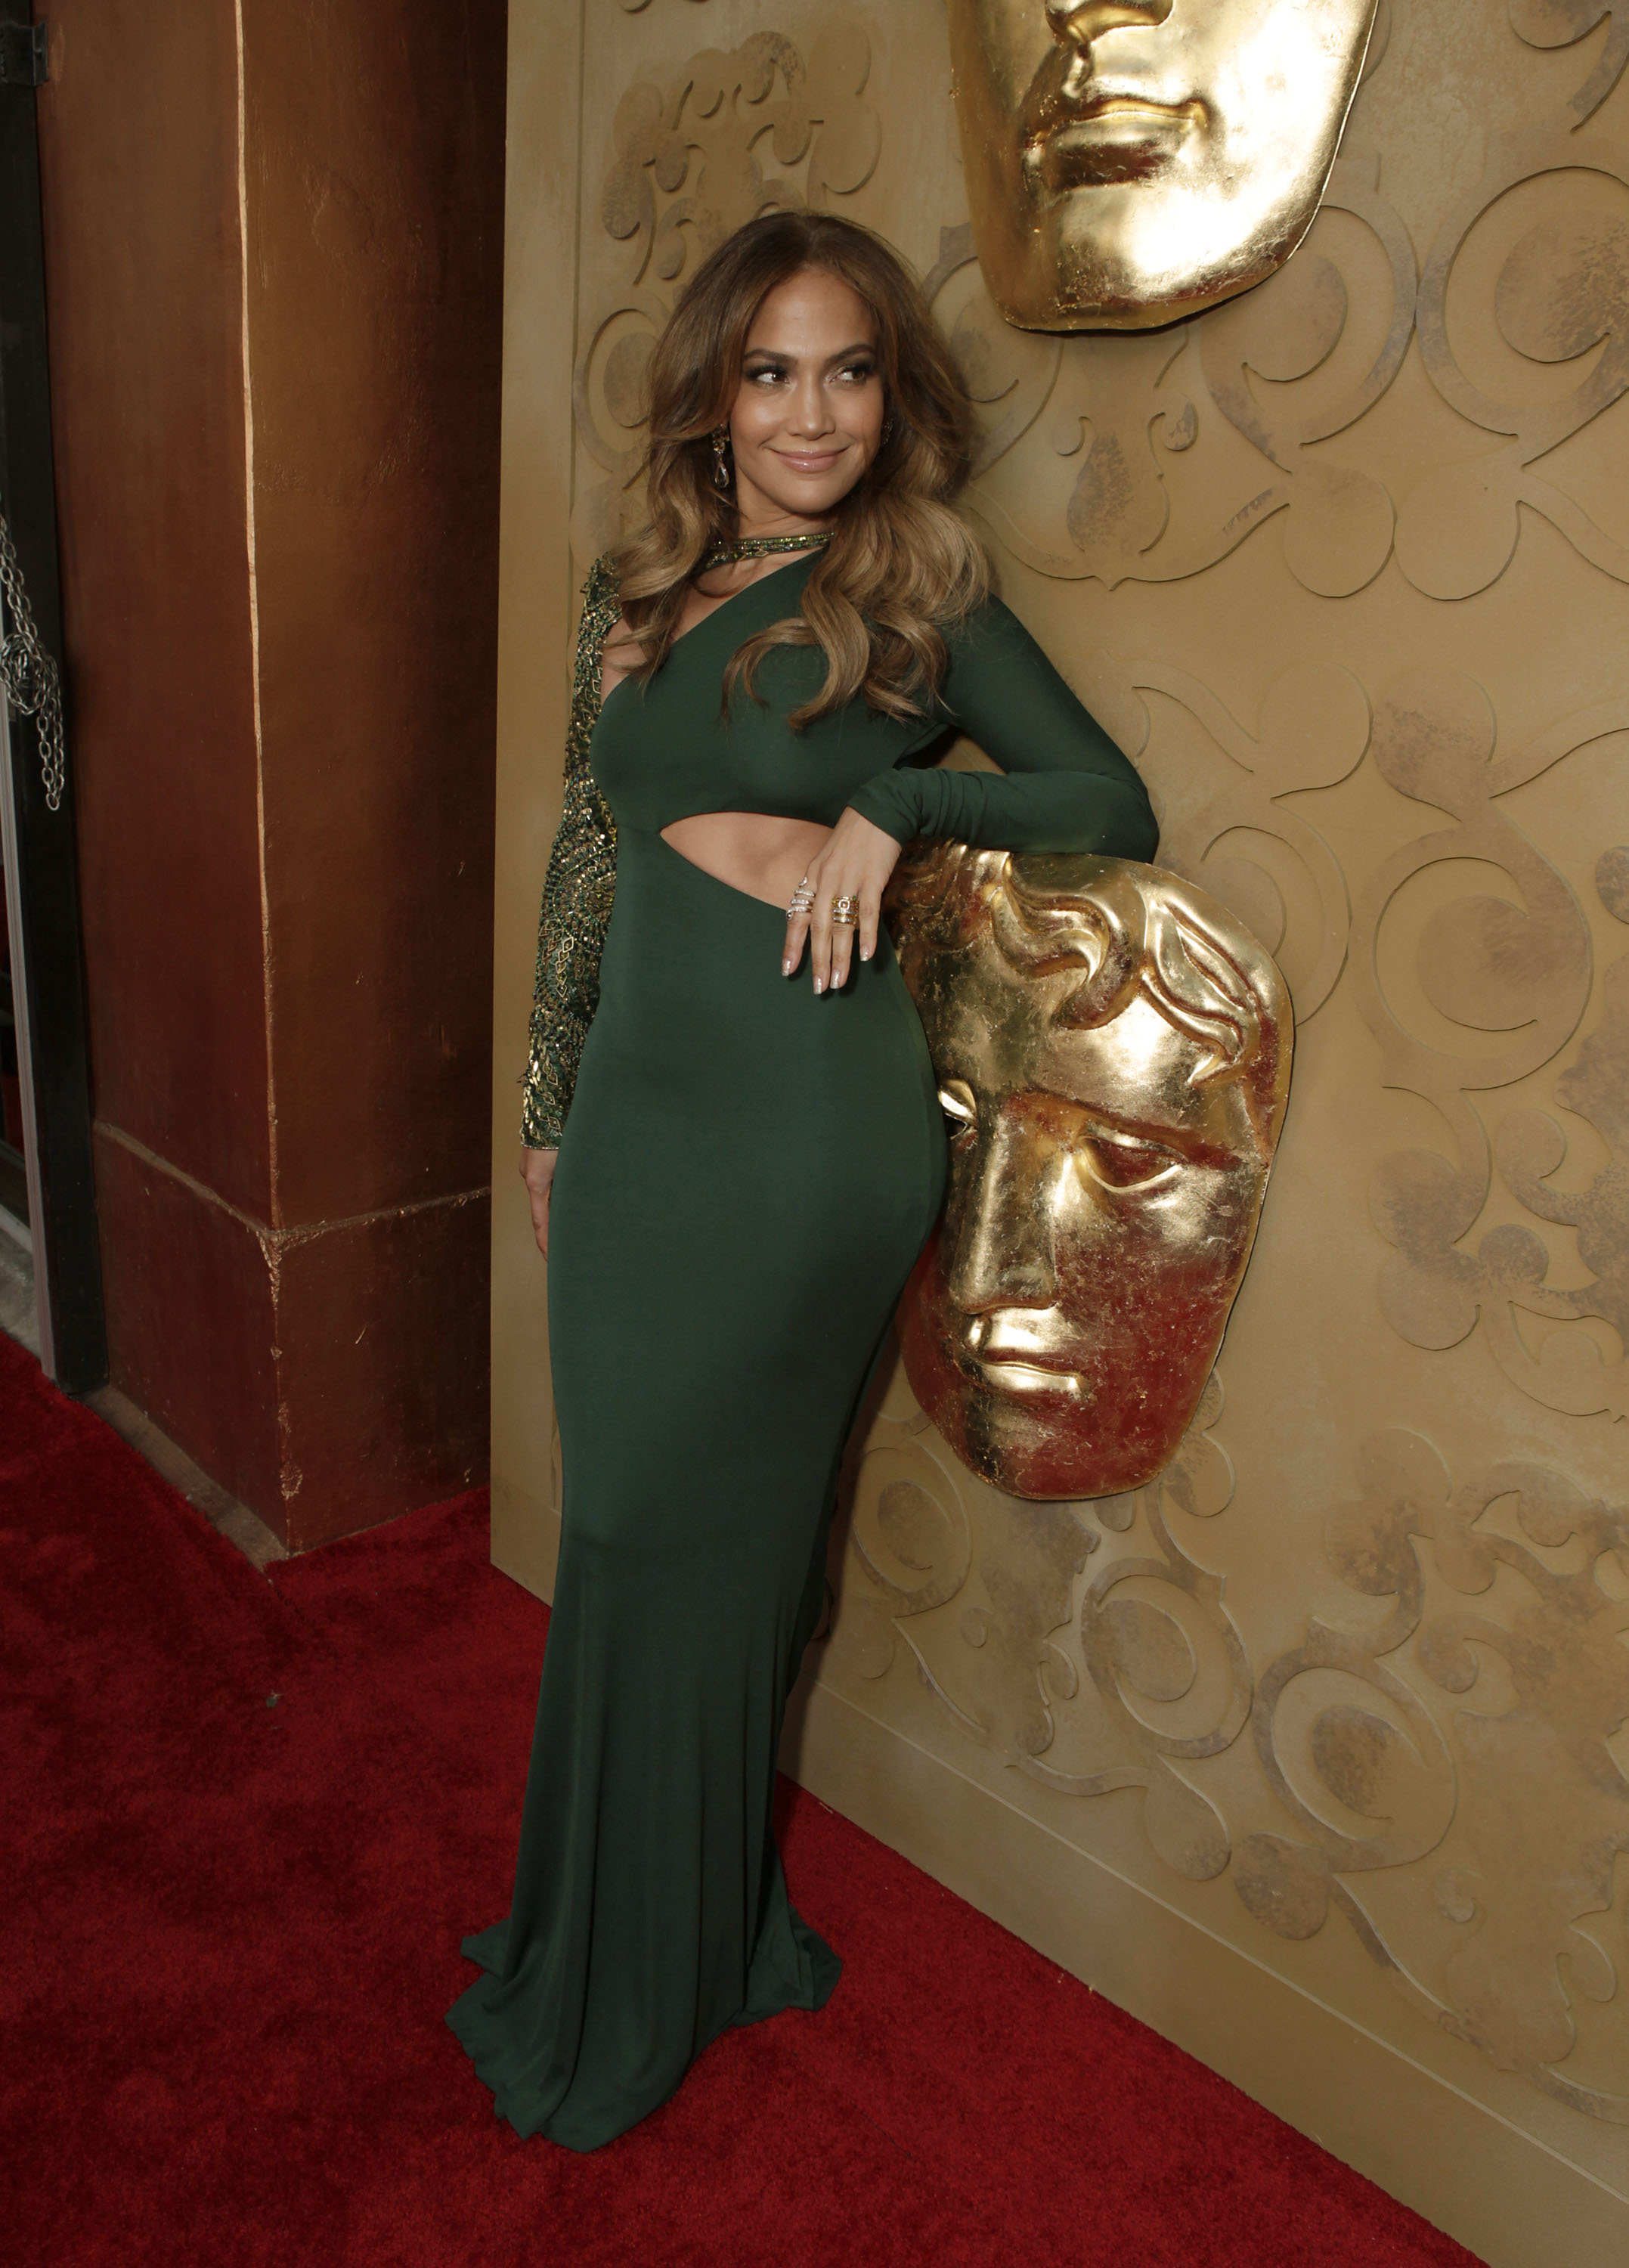 Jennifer Lopez in green at the BAFTA Brits to Watch event in LA.